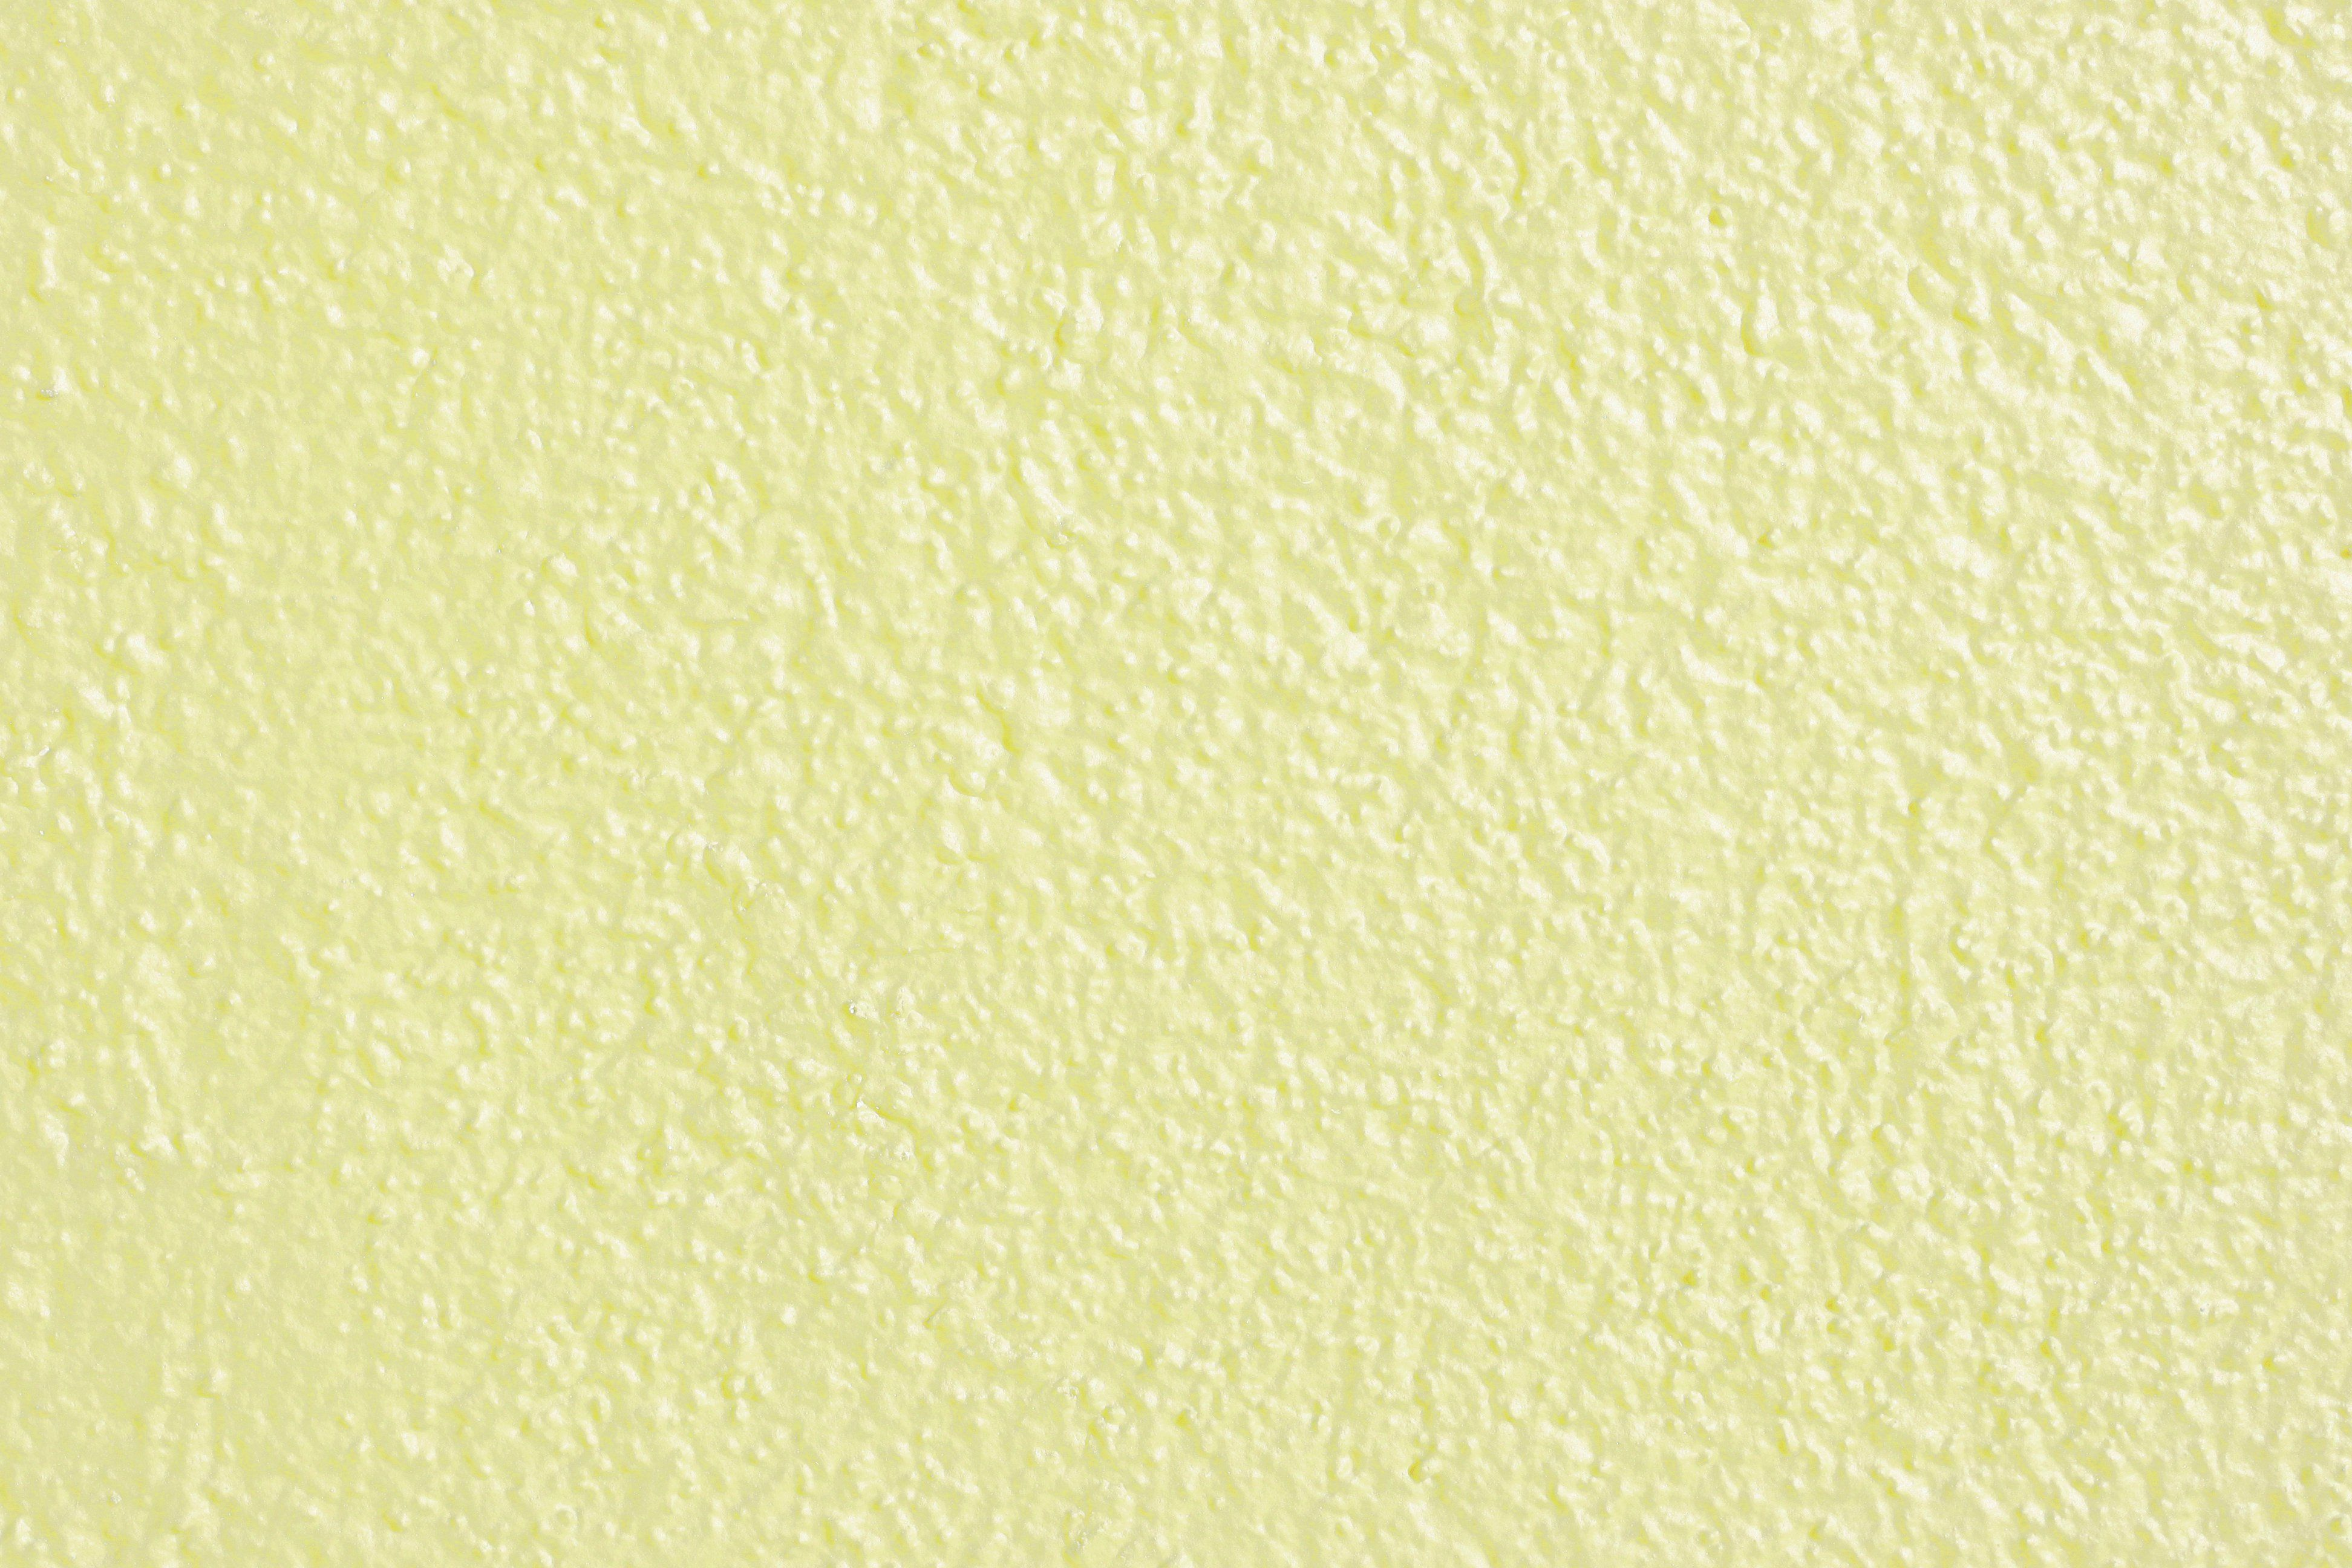 Pale Yellow Painted Wall Texture Yellow Painted Walls Pale Yellow Paints Yellow Painting